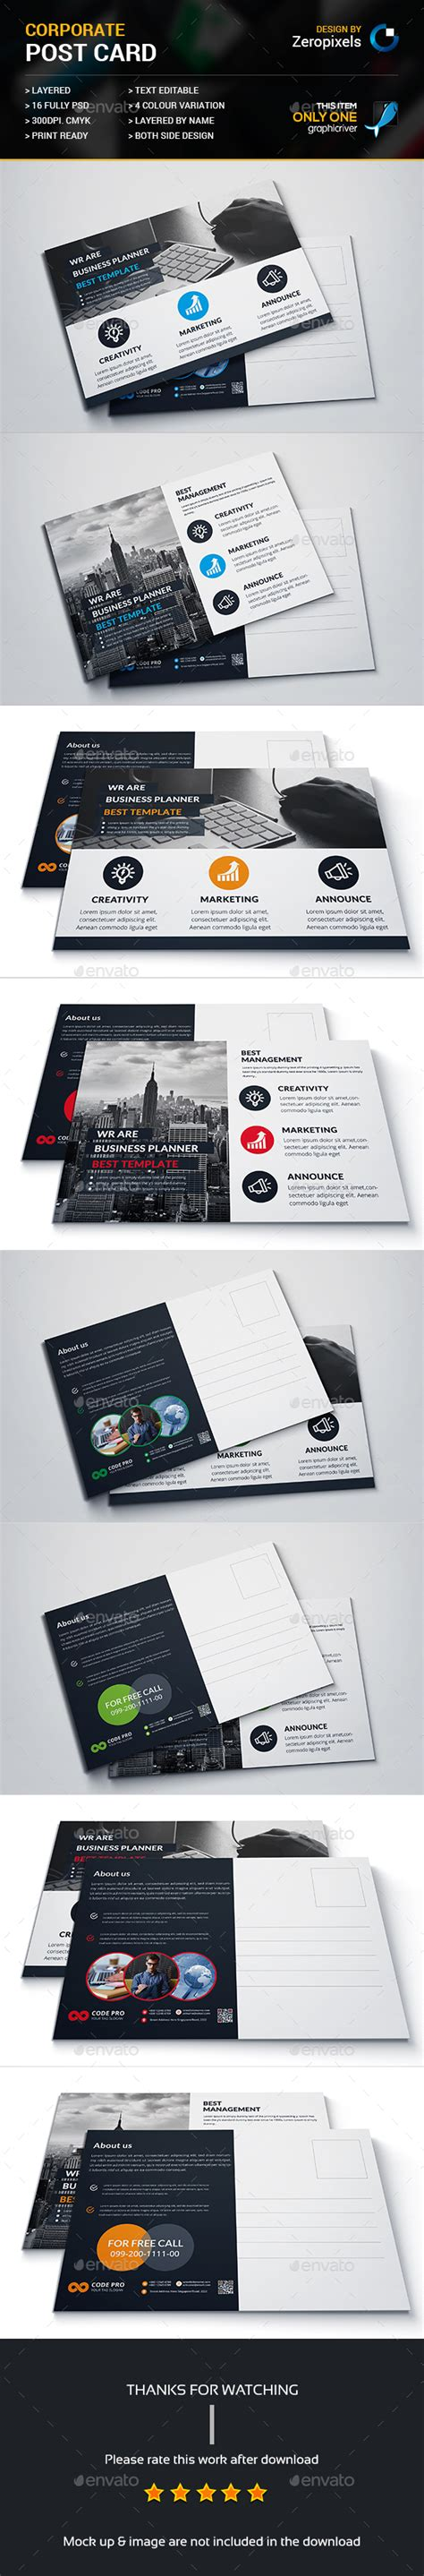 postcard template graphicriver post card bundle templates psd here http